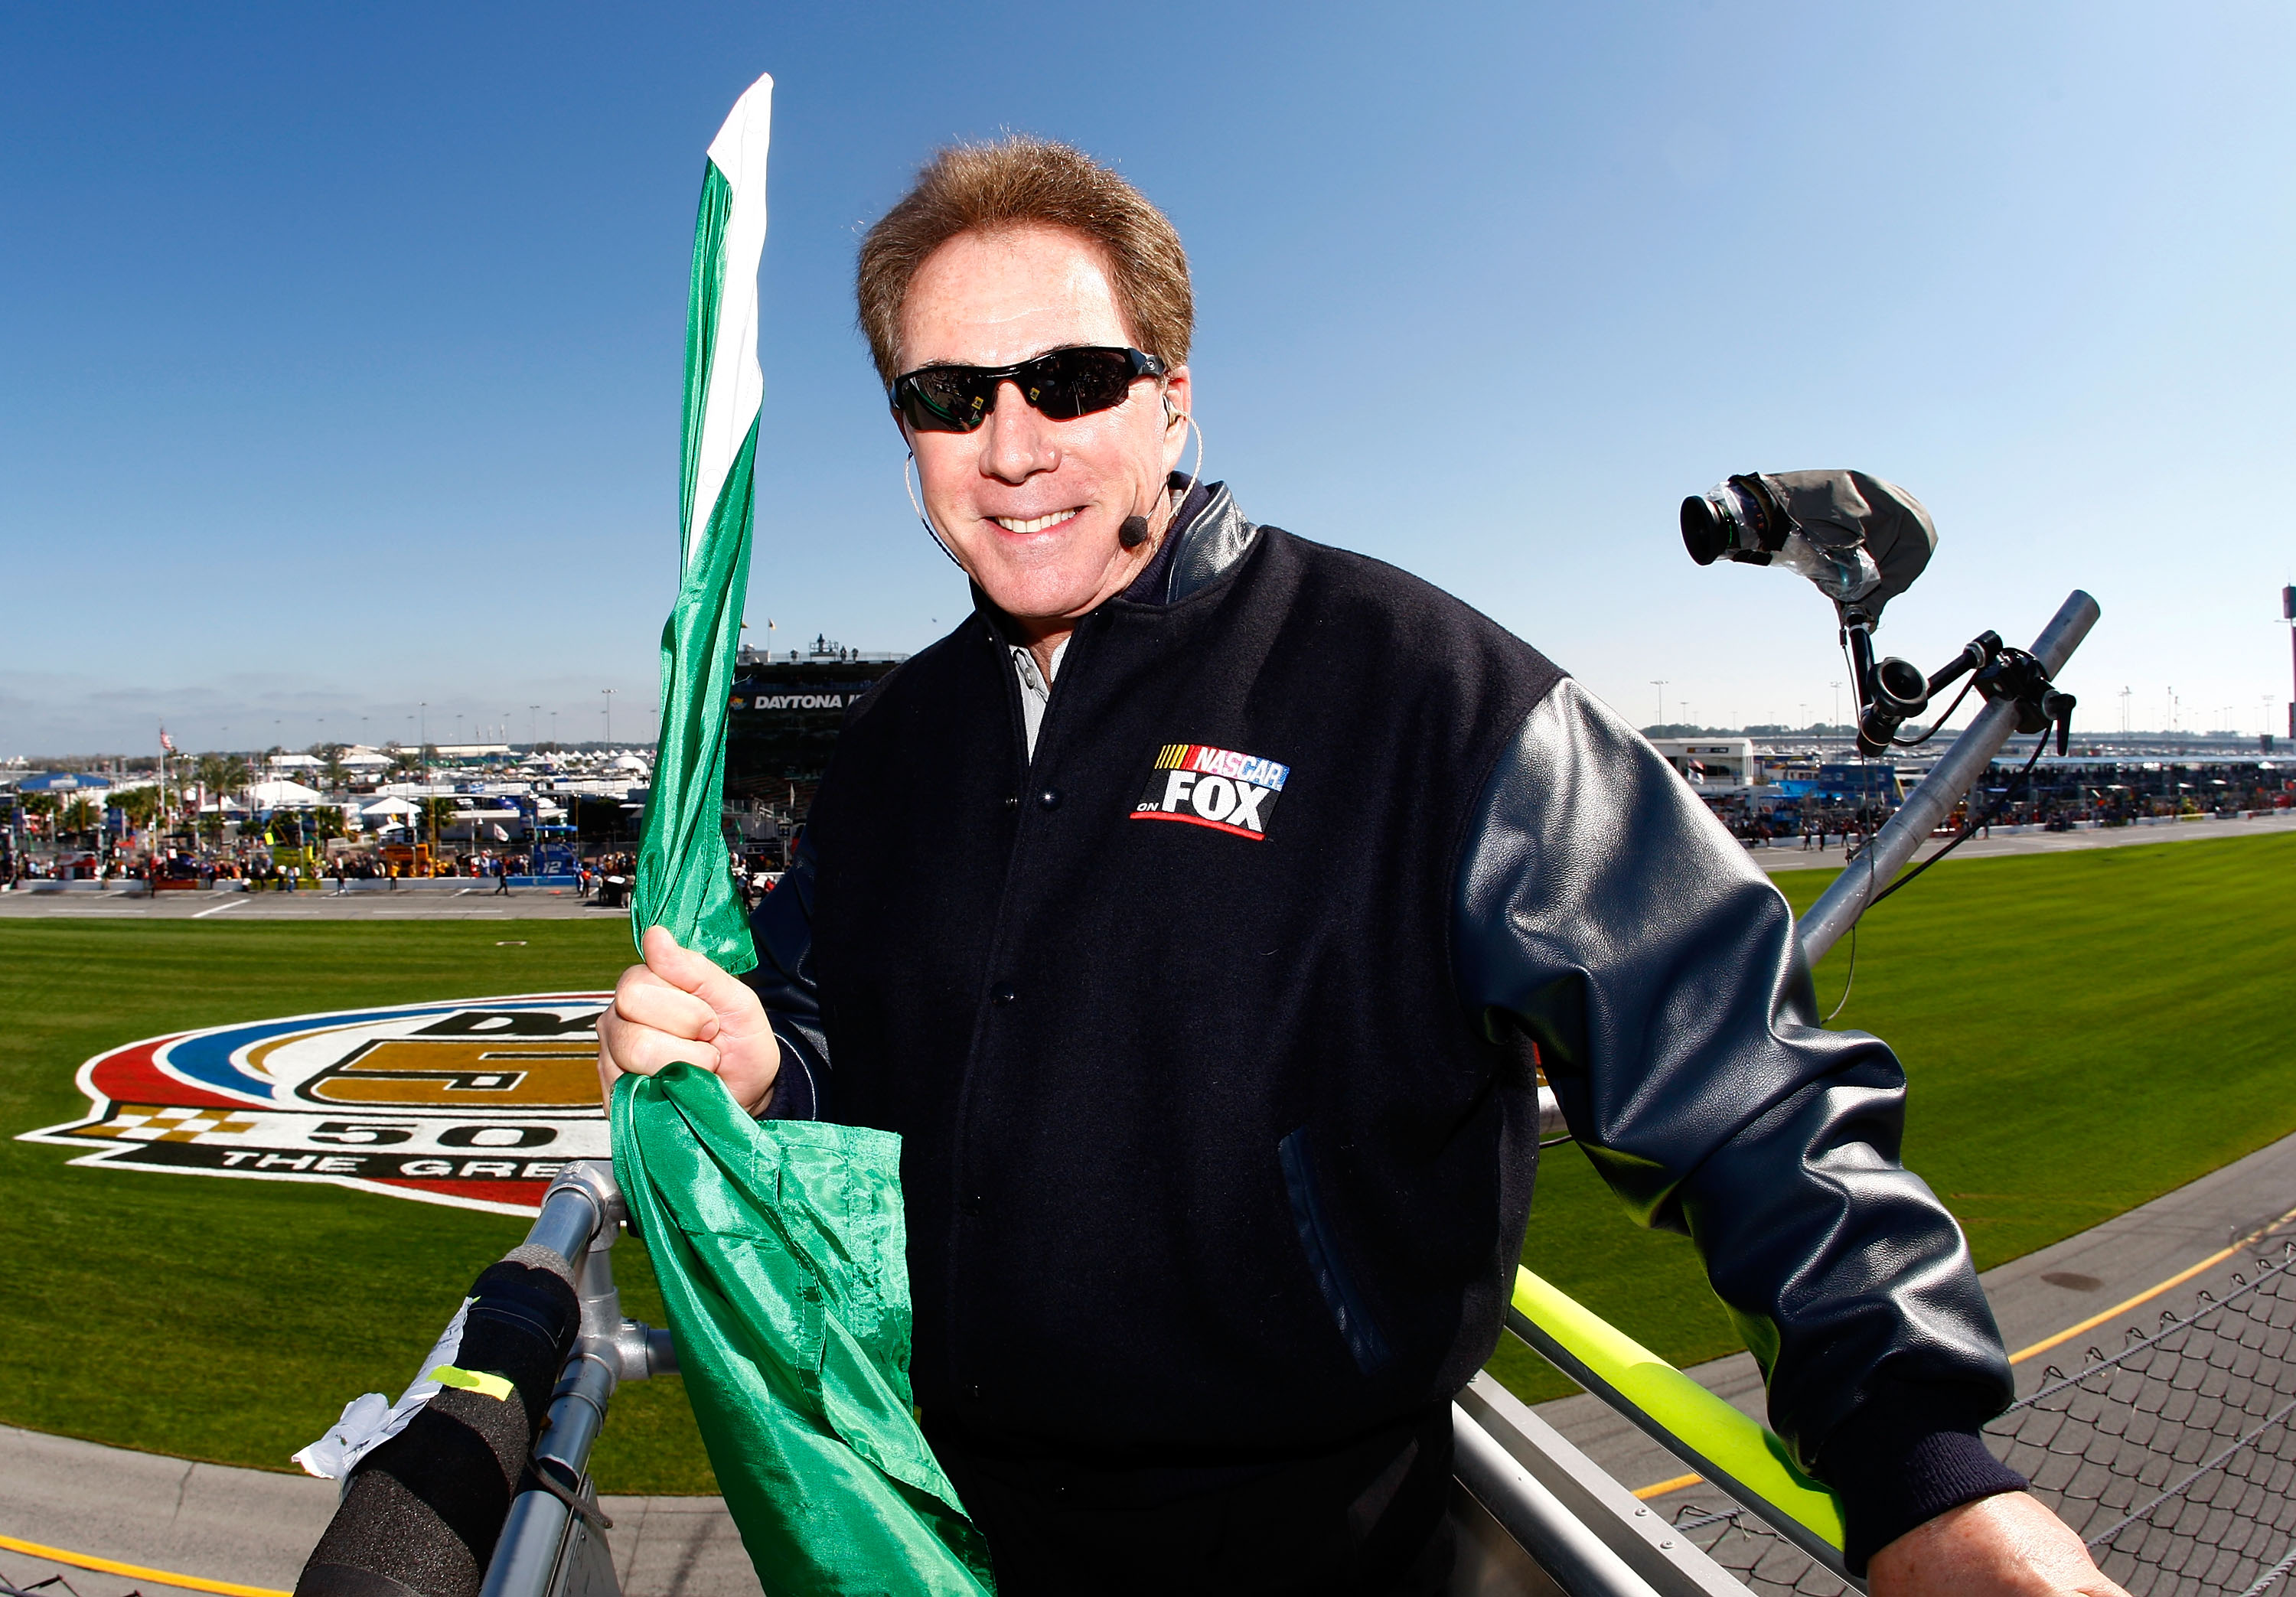 DAYTONA BEACH, FL - FEBRUARY 14:  Honorary starter Darrell Waltrip stands in the flag stand prior to the NASCAR Sprint Cup Gatorade Duels 150 at Daytona International Speedway on February 14, 2008 in Daytona Beach, Florida.  (Photo by Jamie Squire/Getty I